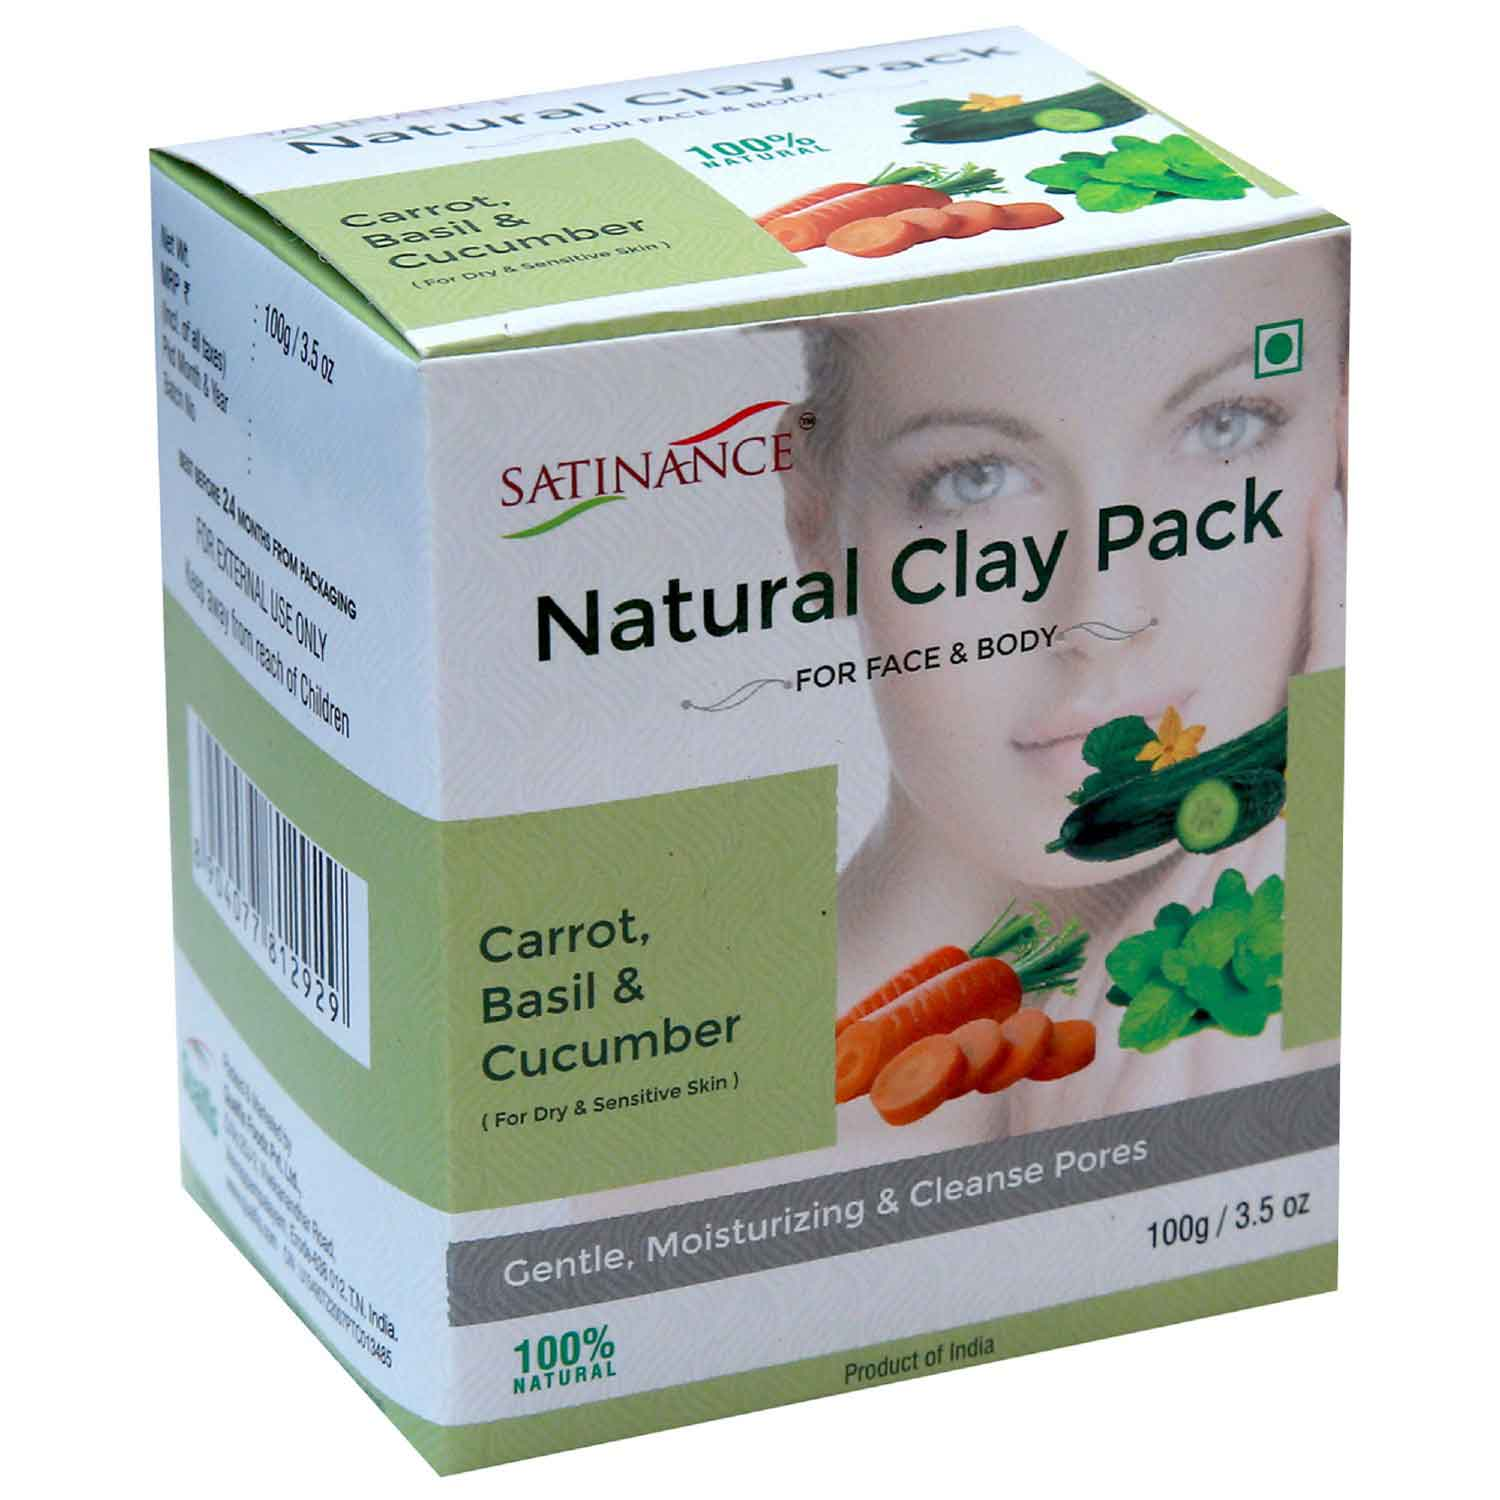 Natural Clay Pack Carrot, Basil & Cucumber – 100g ( Gentle, Moisturizing, Cleans Pores)